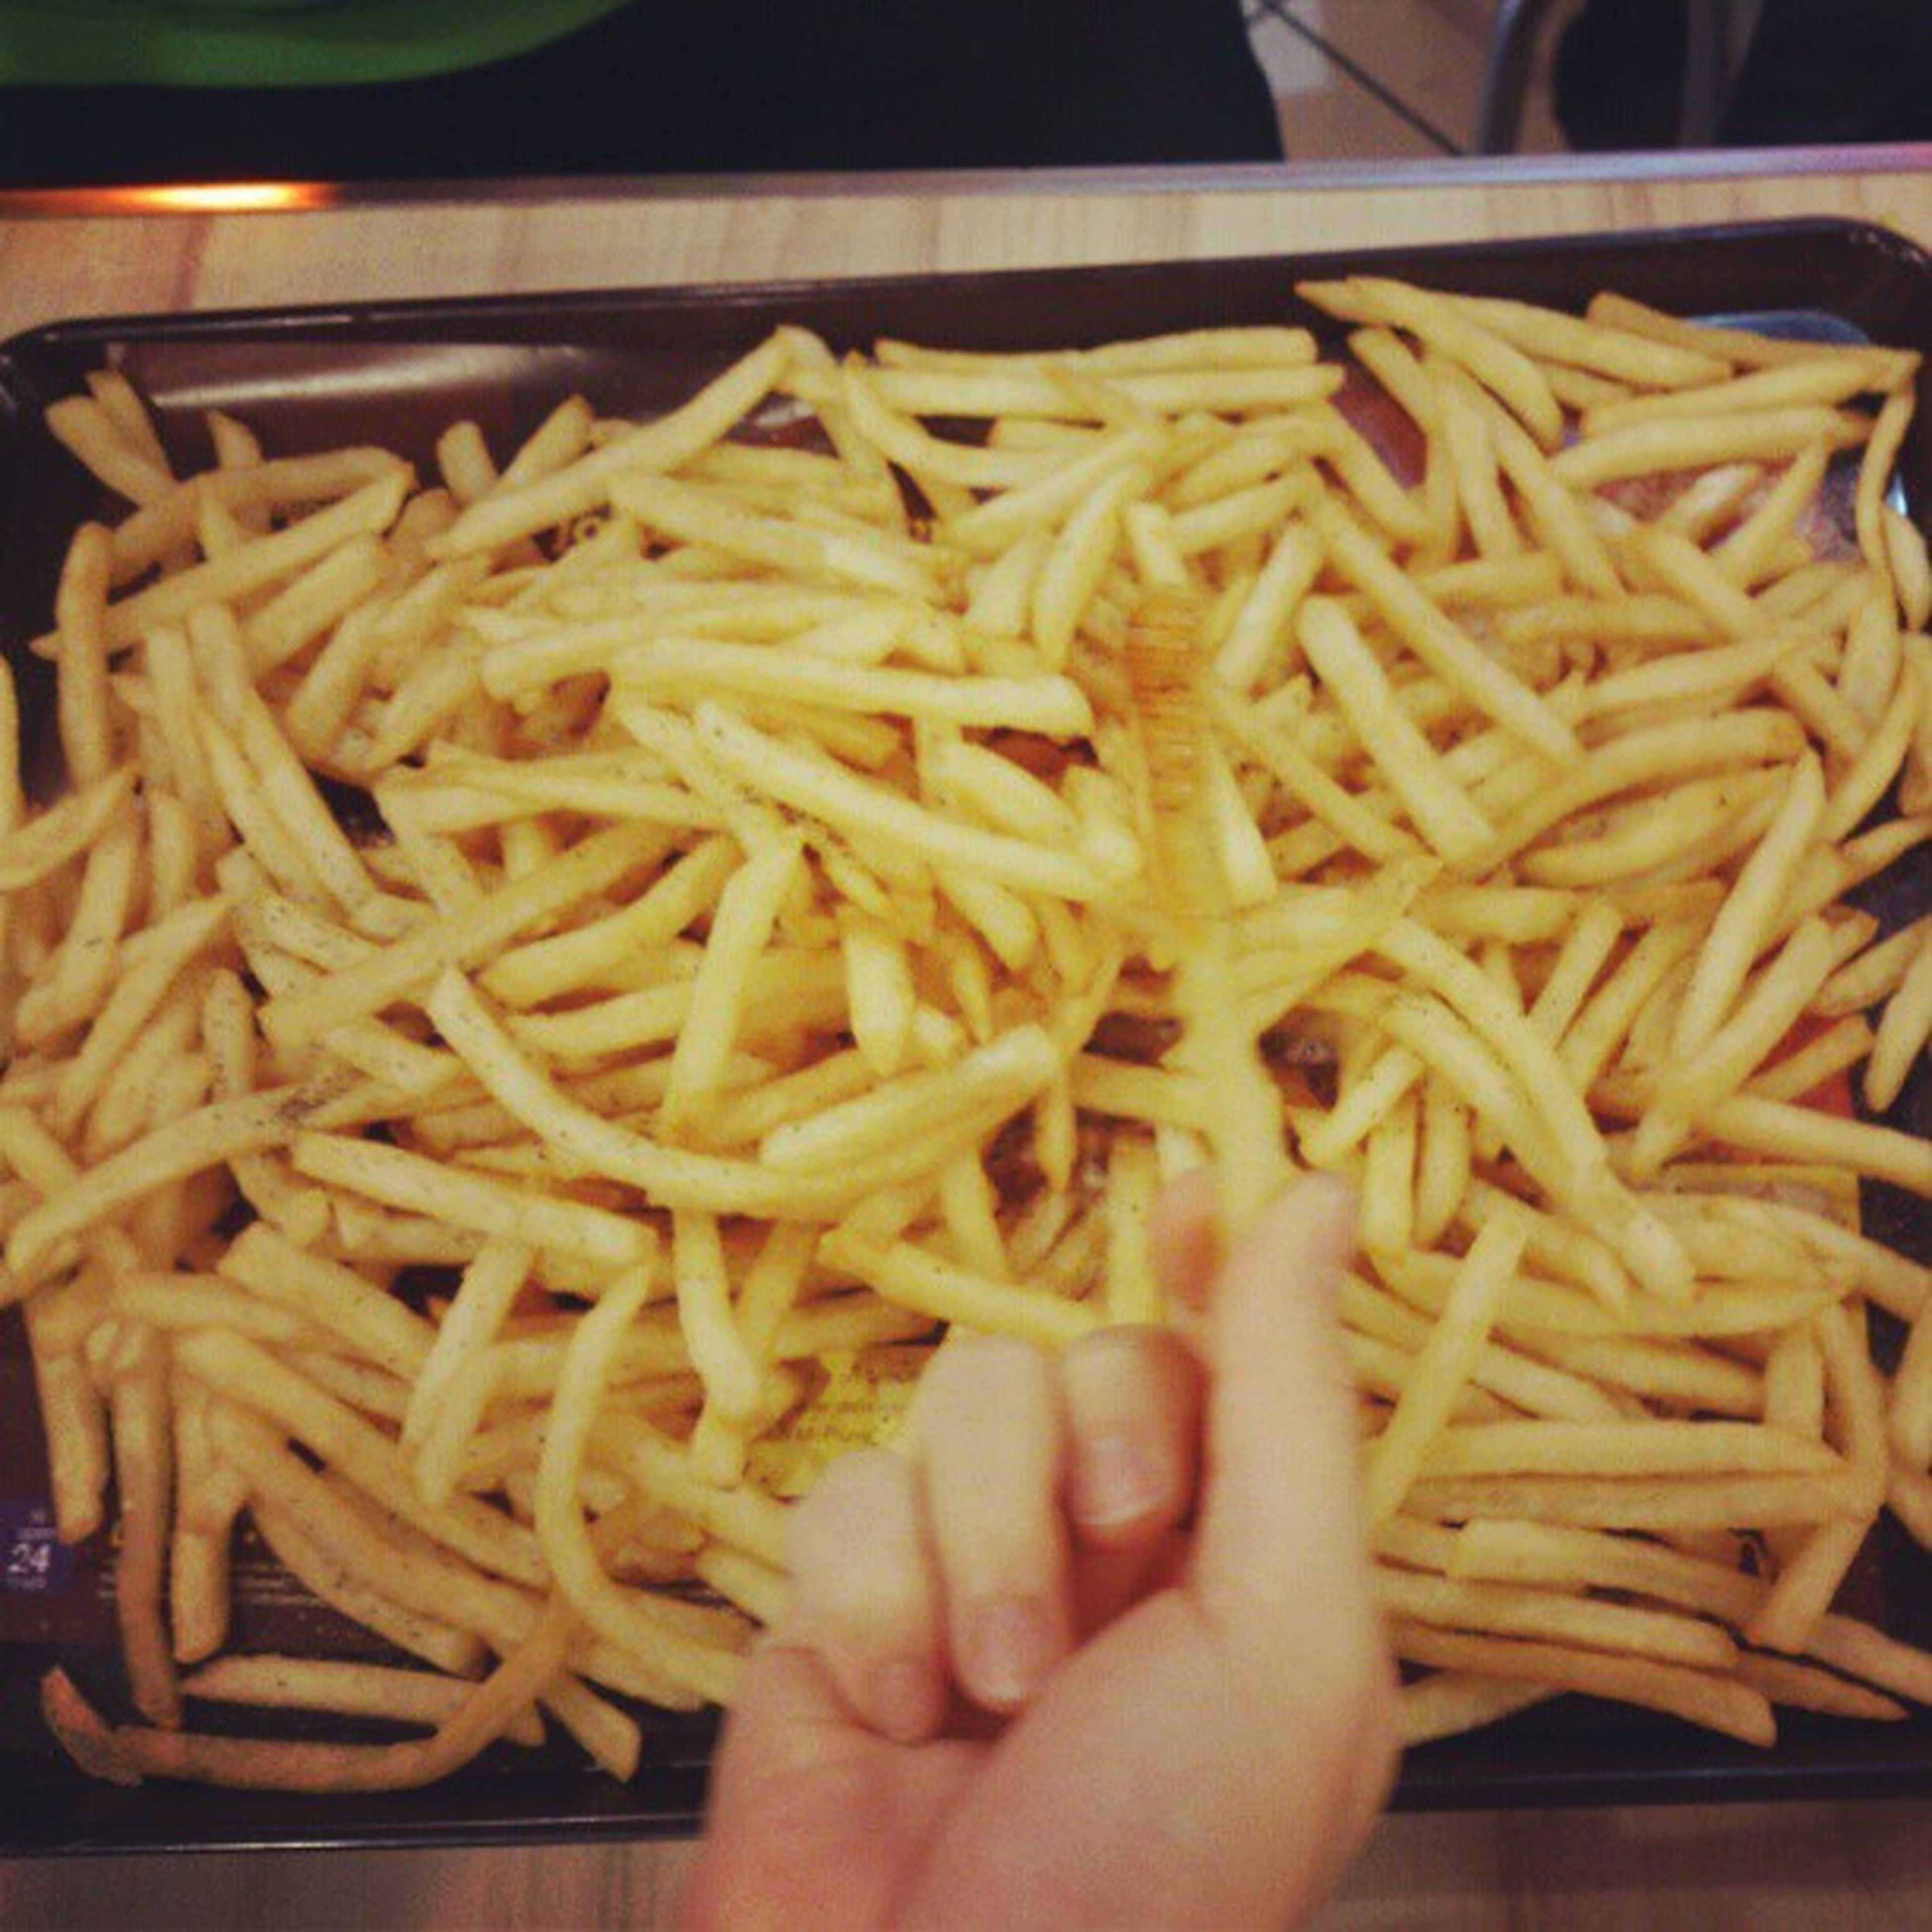 food, food and drink, indoors, freshness, ready-to-eat, close-up, healthy eating, still life, pasta, french fries, part of, meal, person, meat, cropped, high angle view, noodles, deep fried, table, plate